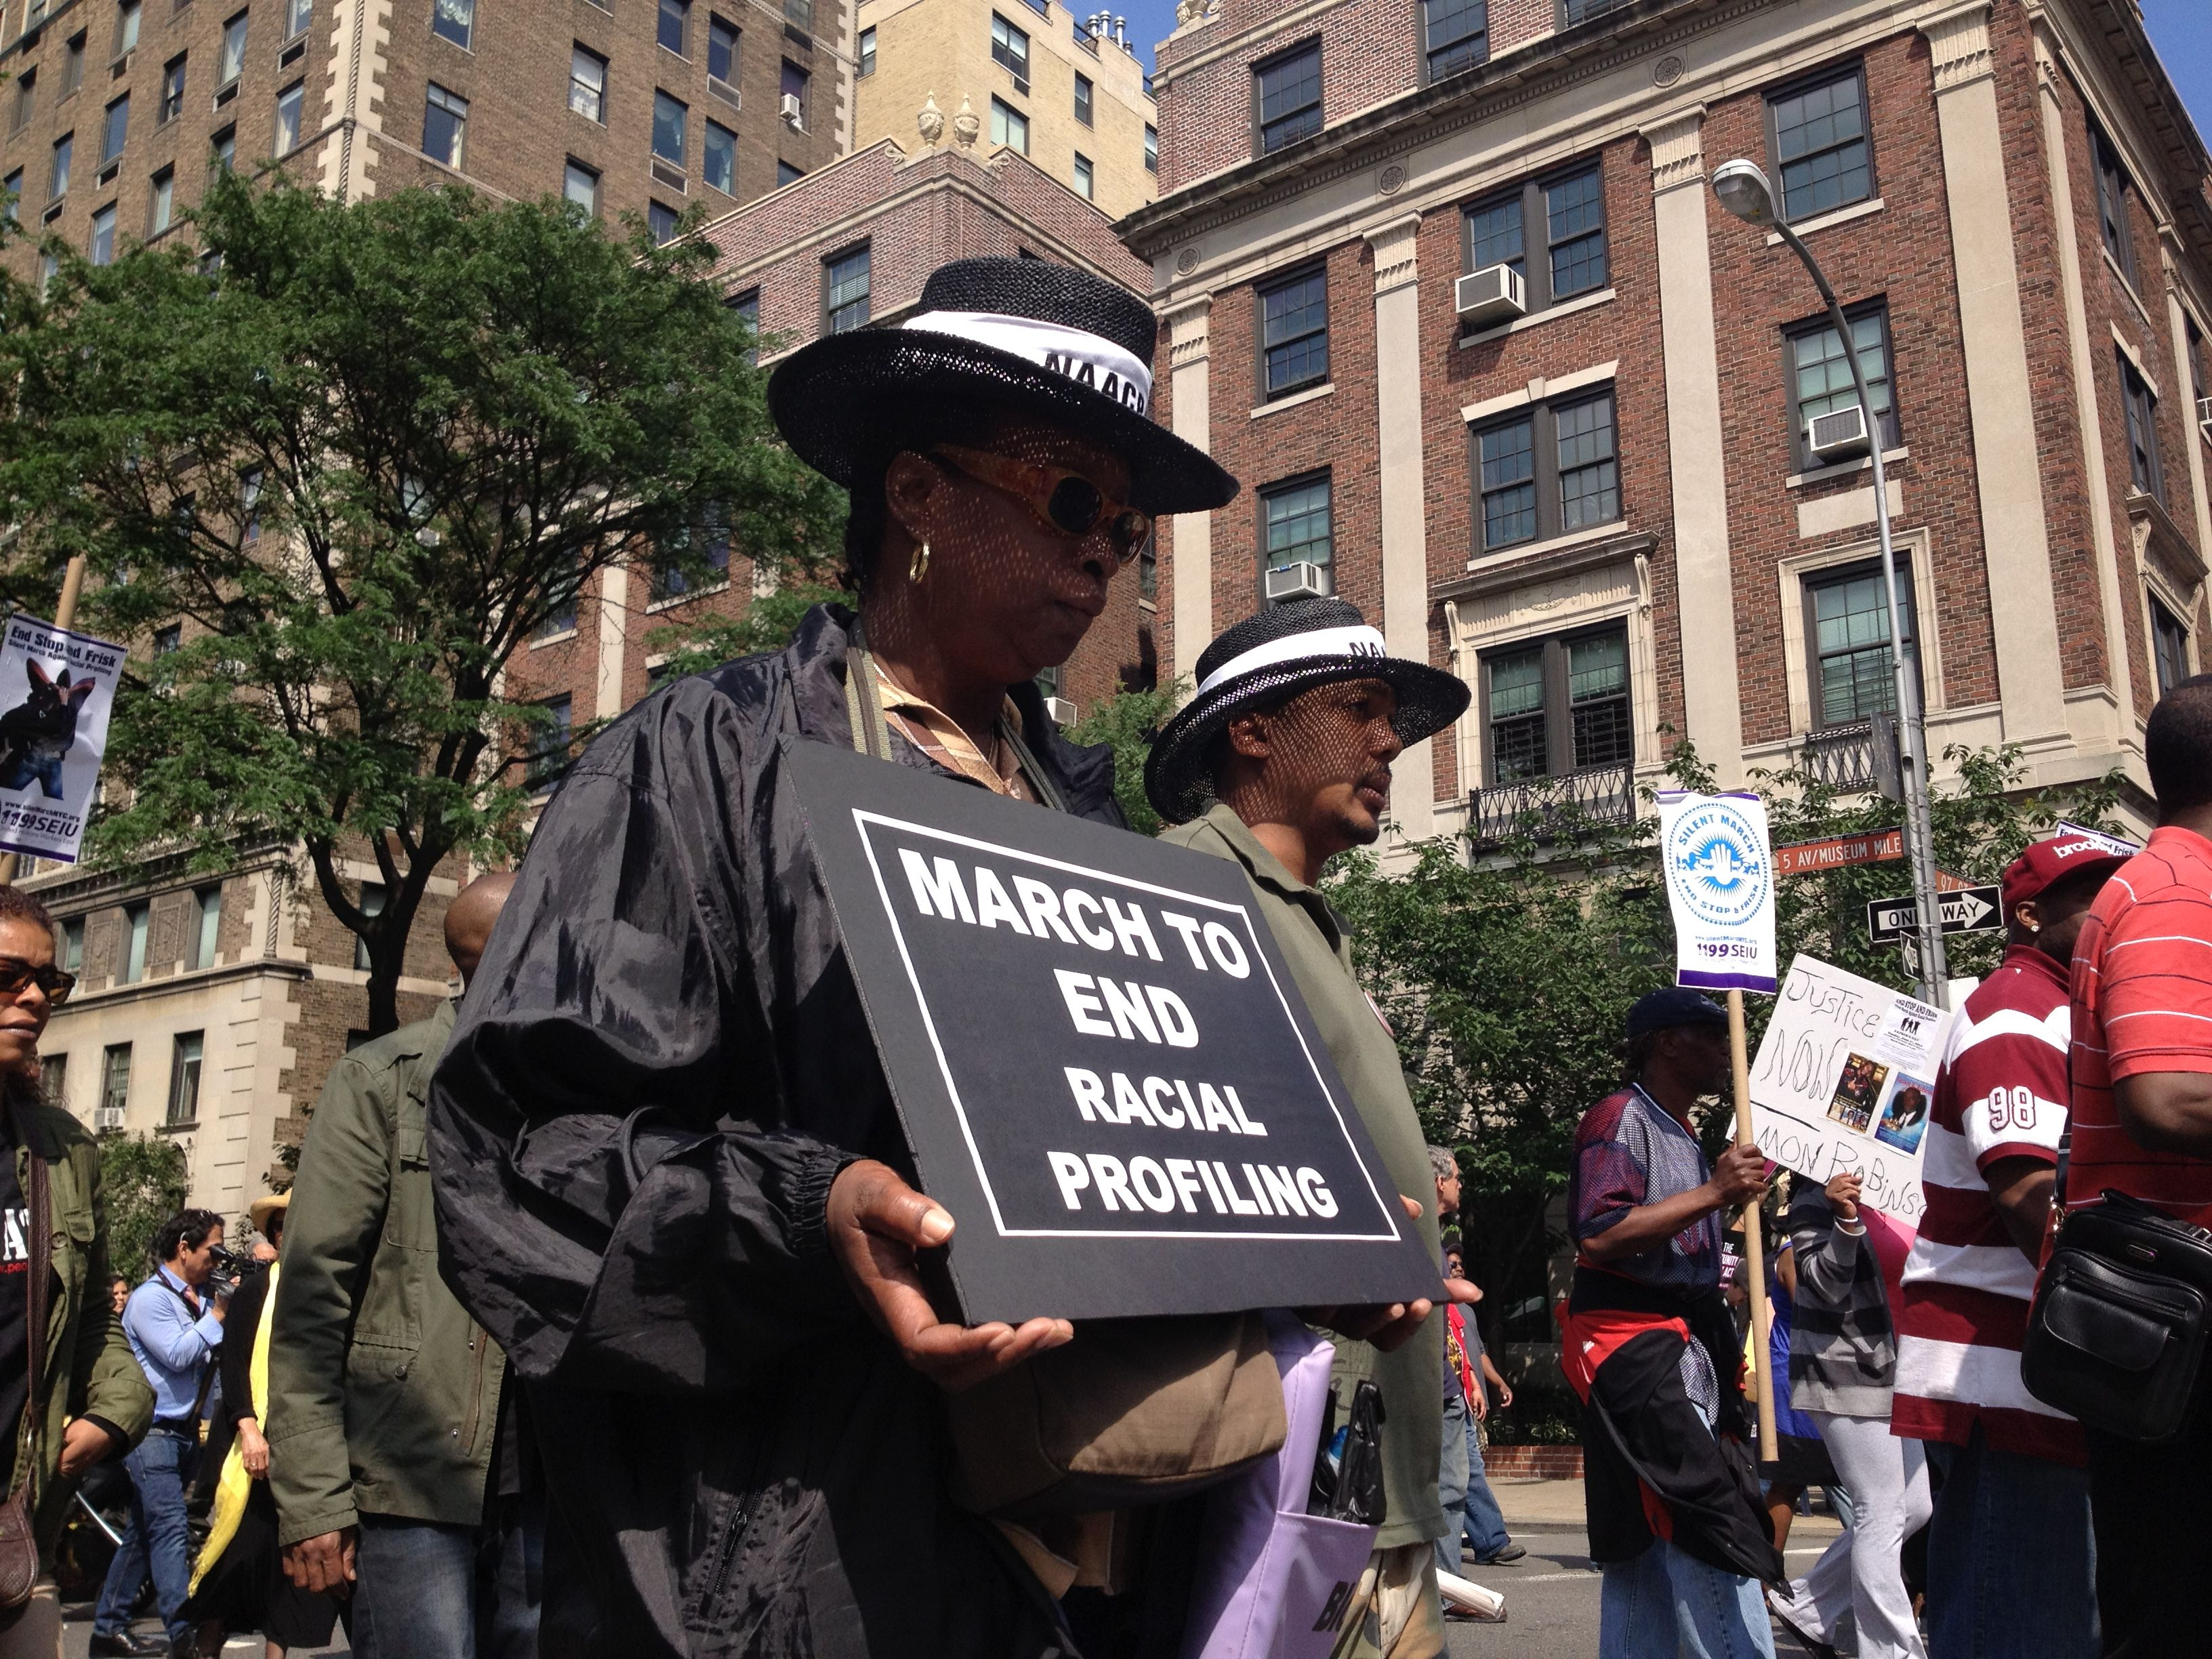 3264px-Silent_march_to_end_stop_and_frisk_and_racial_profiling[1]